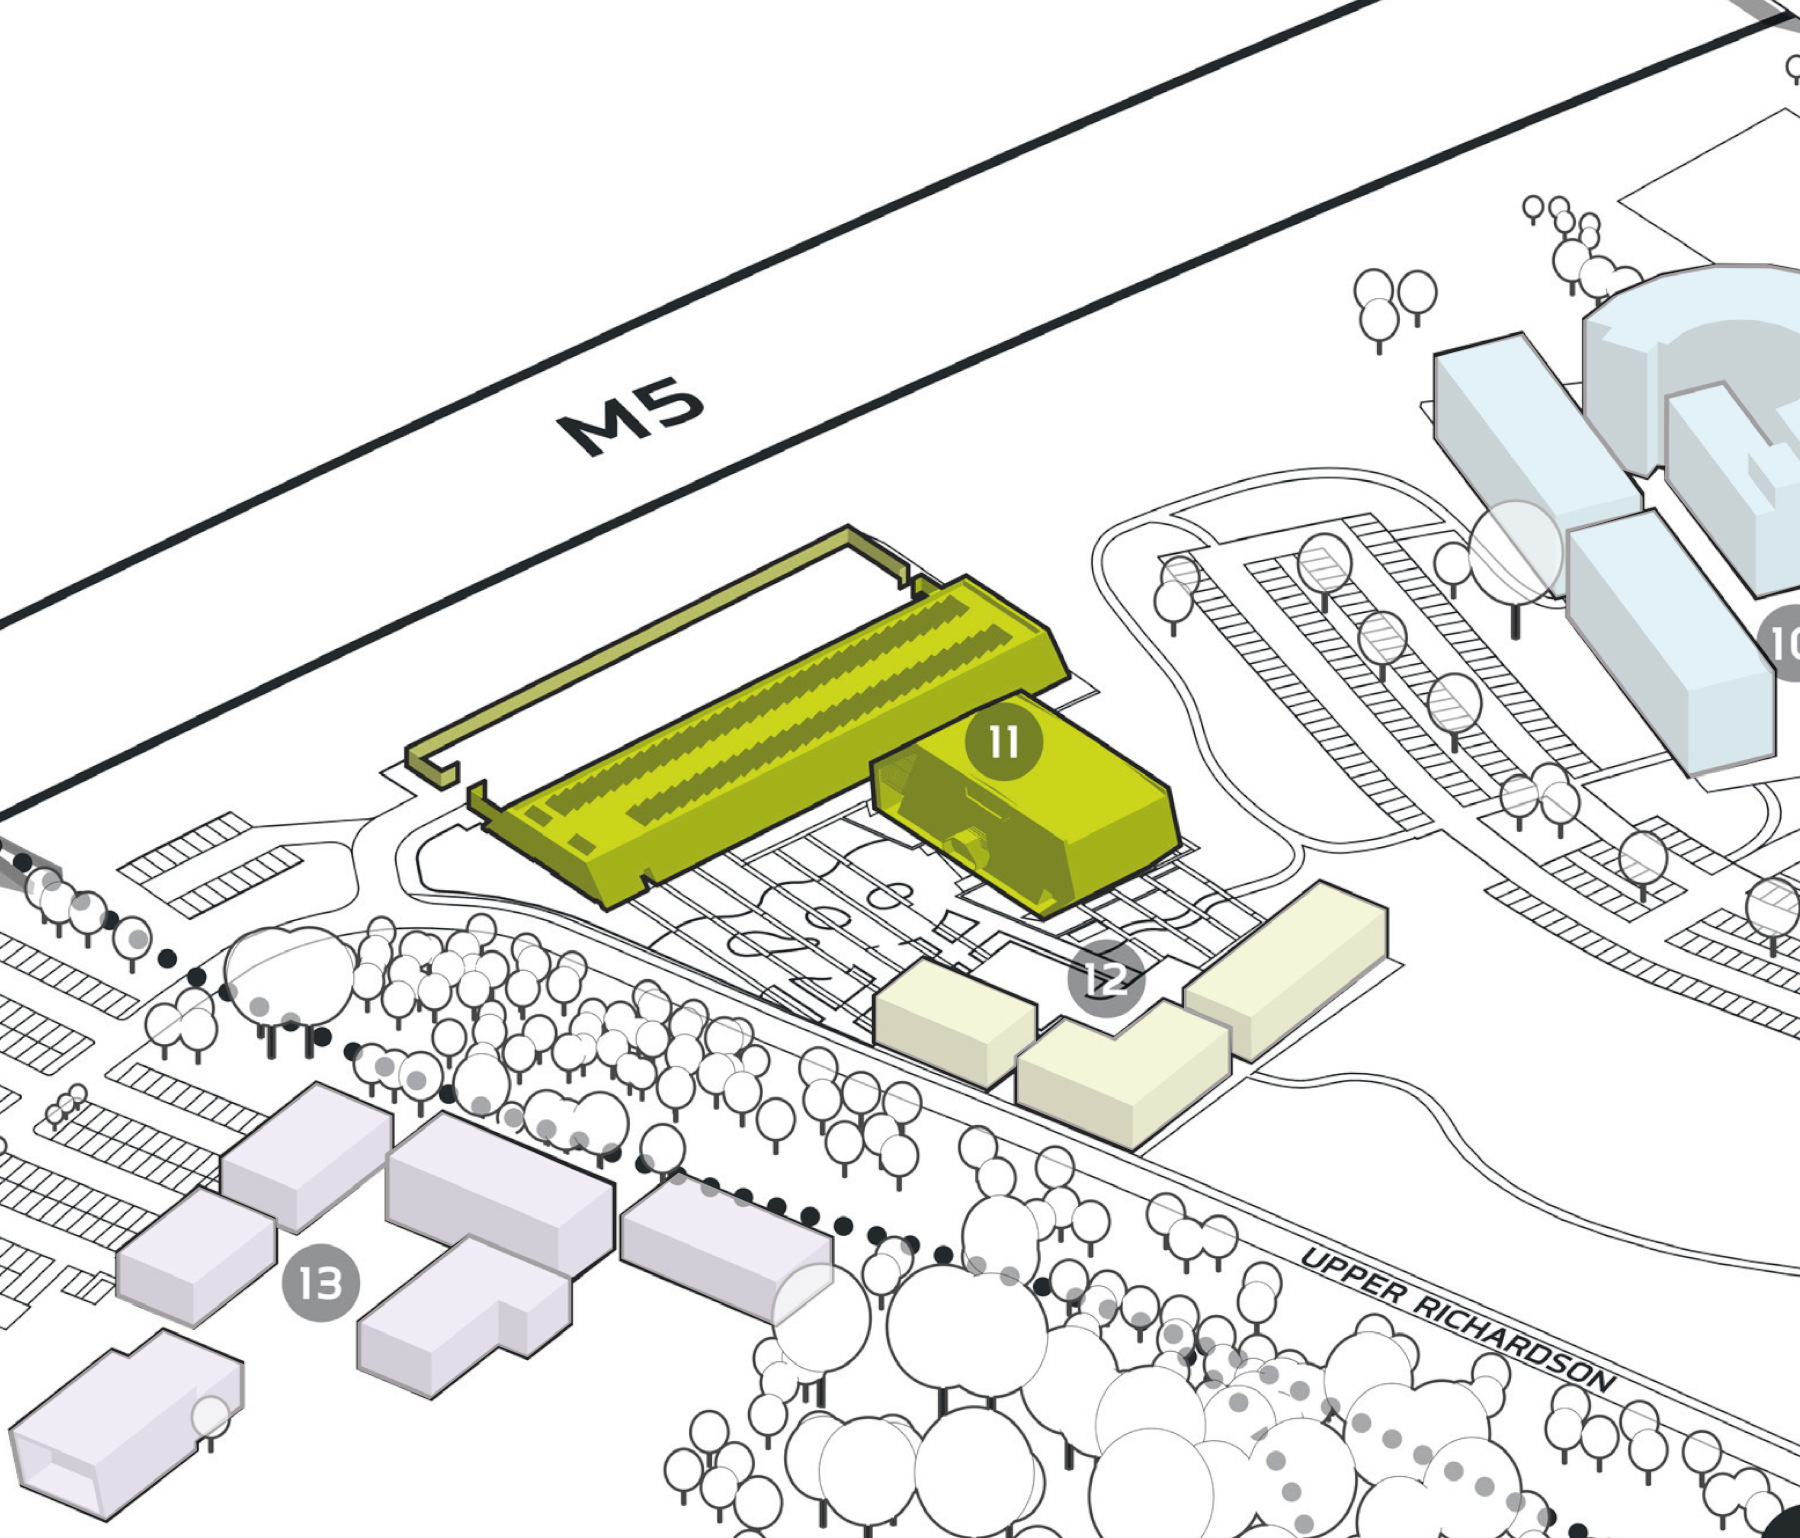 Park Plan highlighting cluster B Building 11